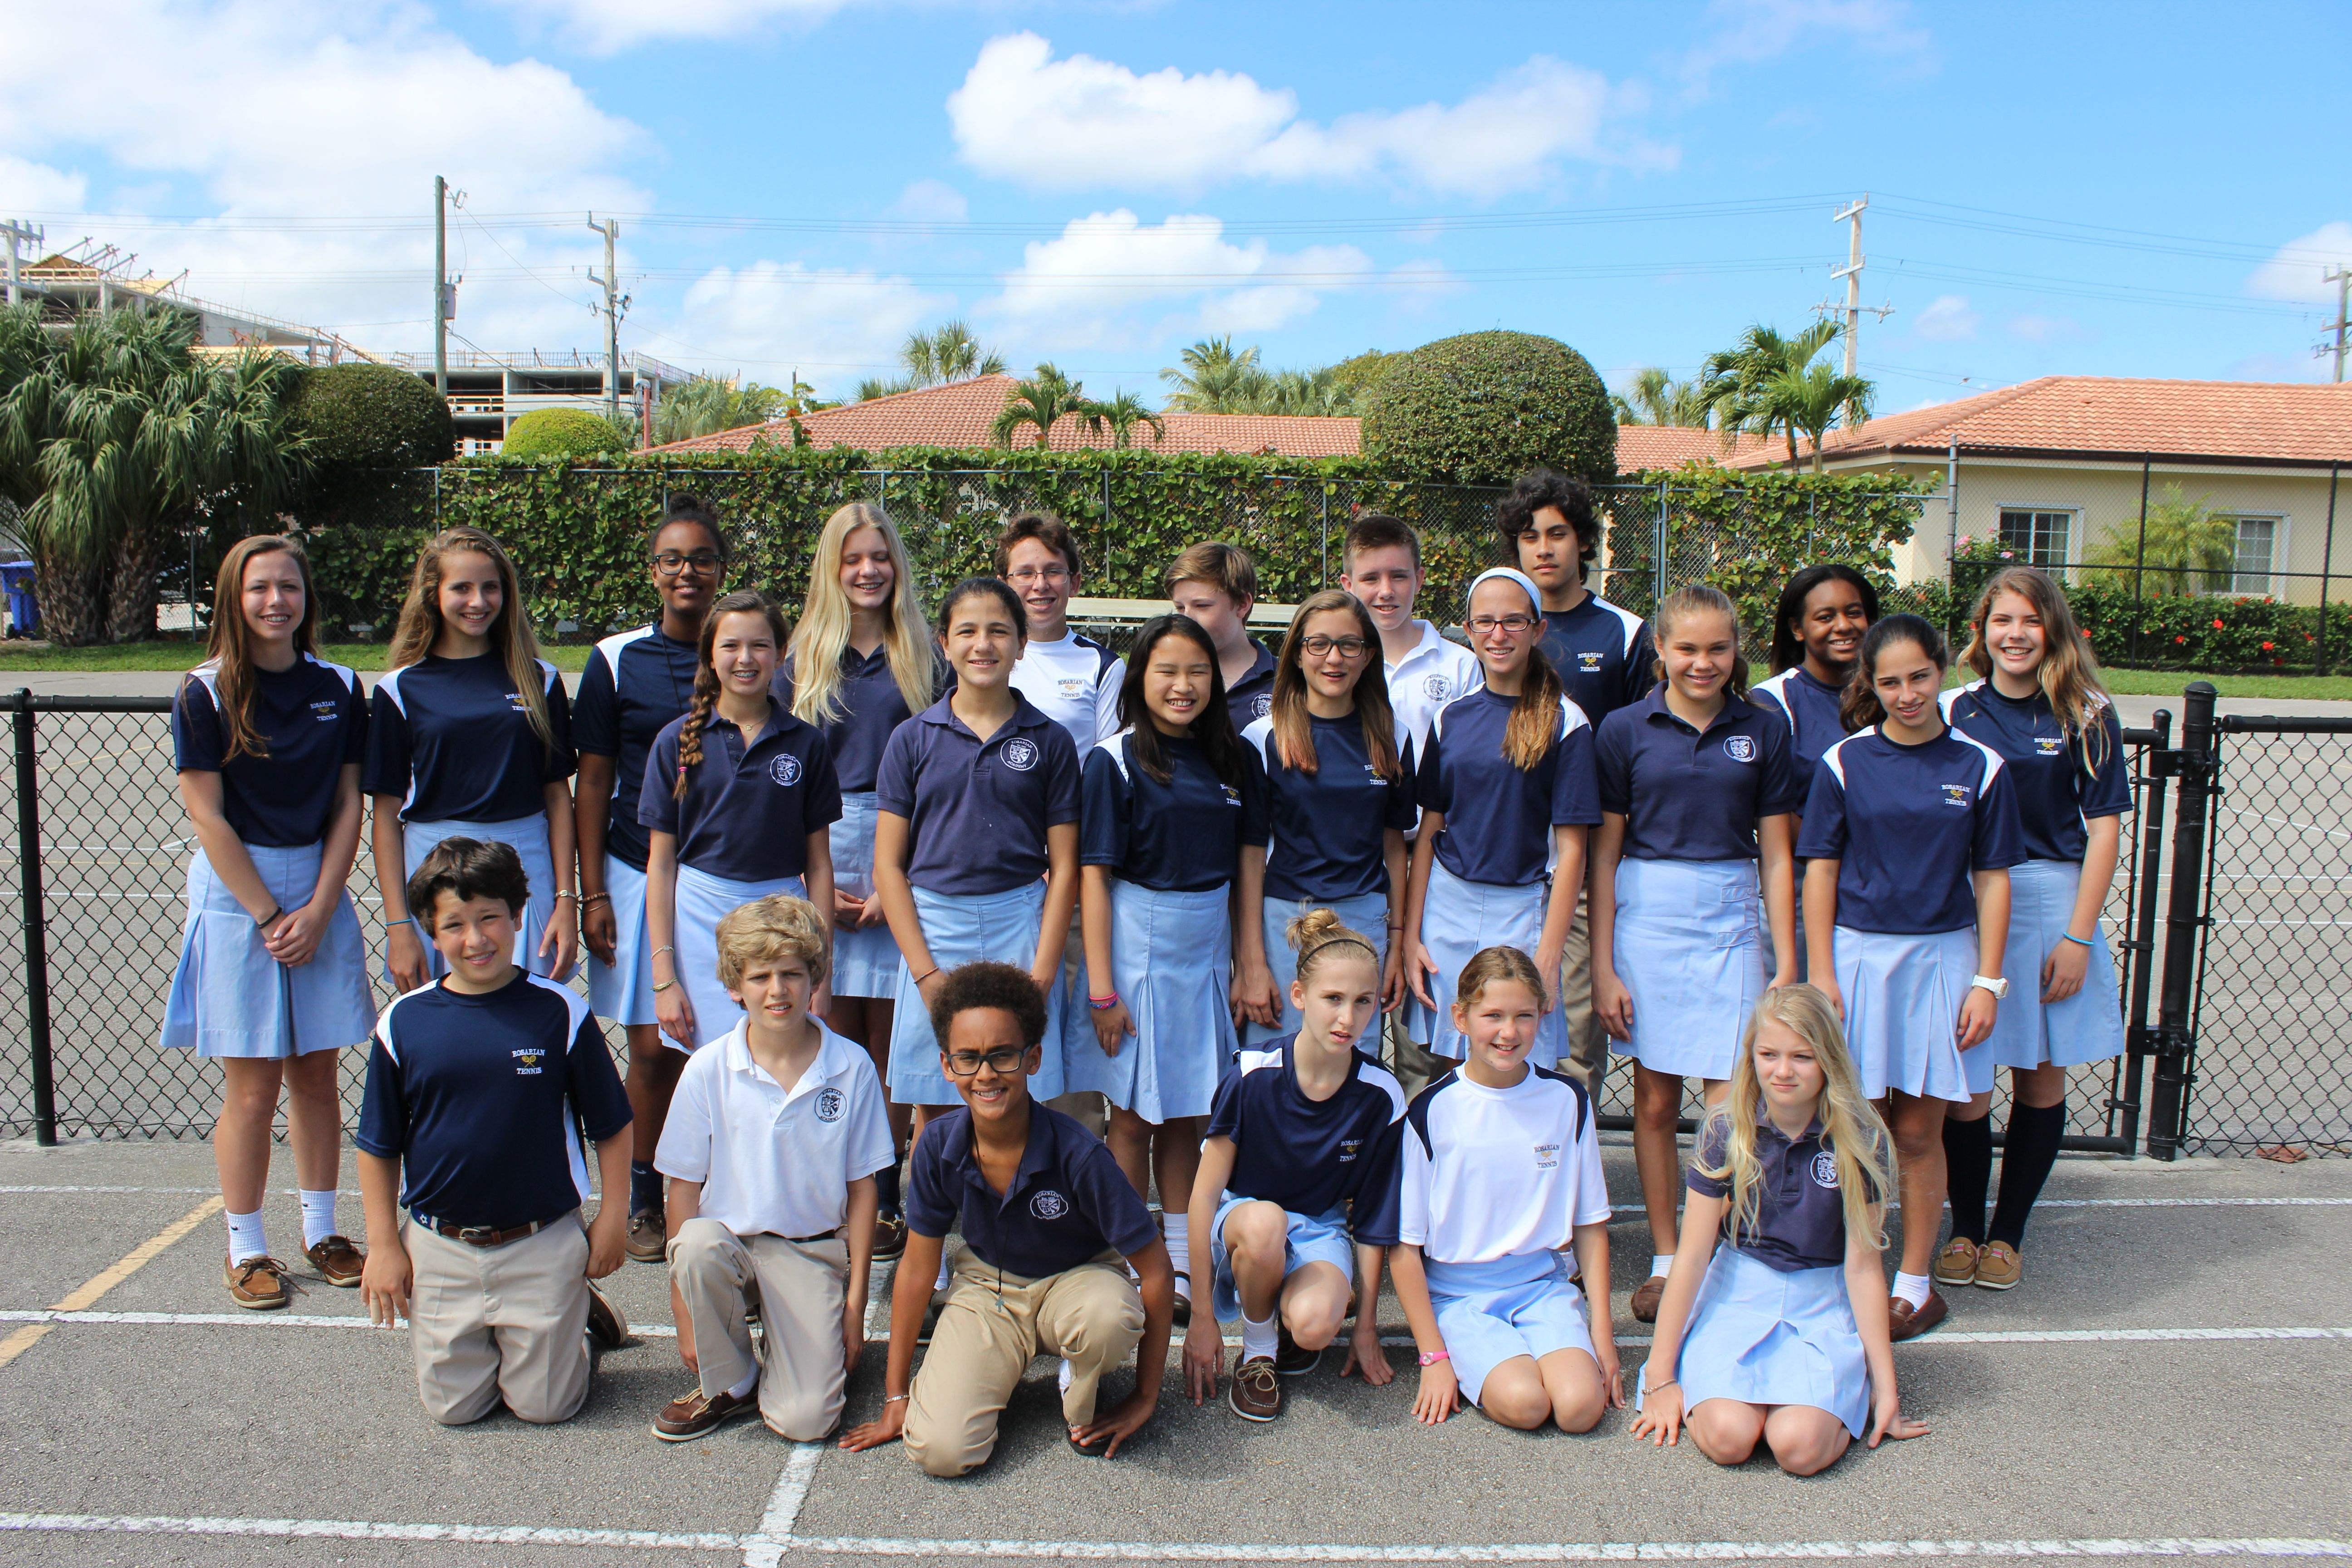 Rosarian Academy S Tennis Team Gearing Up For A Great Season Private School Tennis Team Catholic School